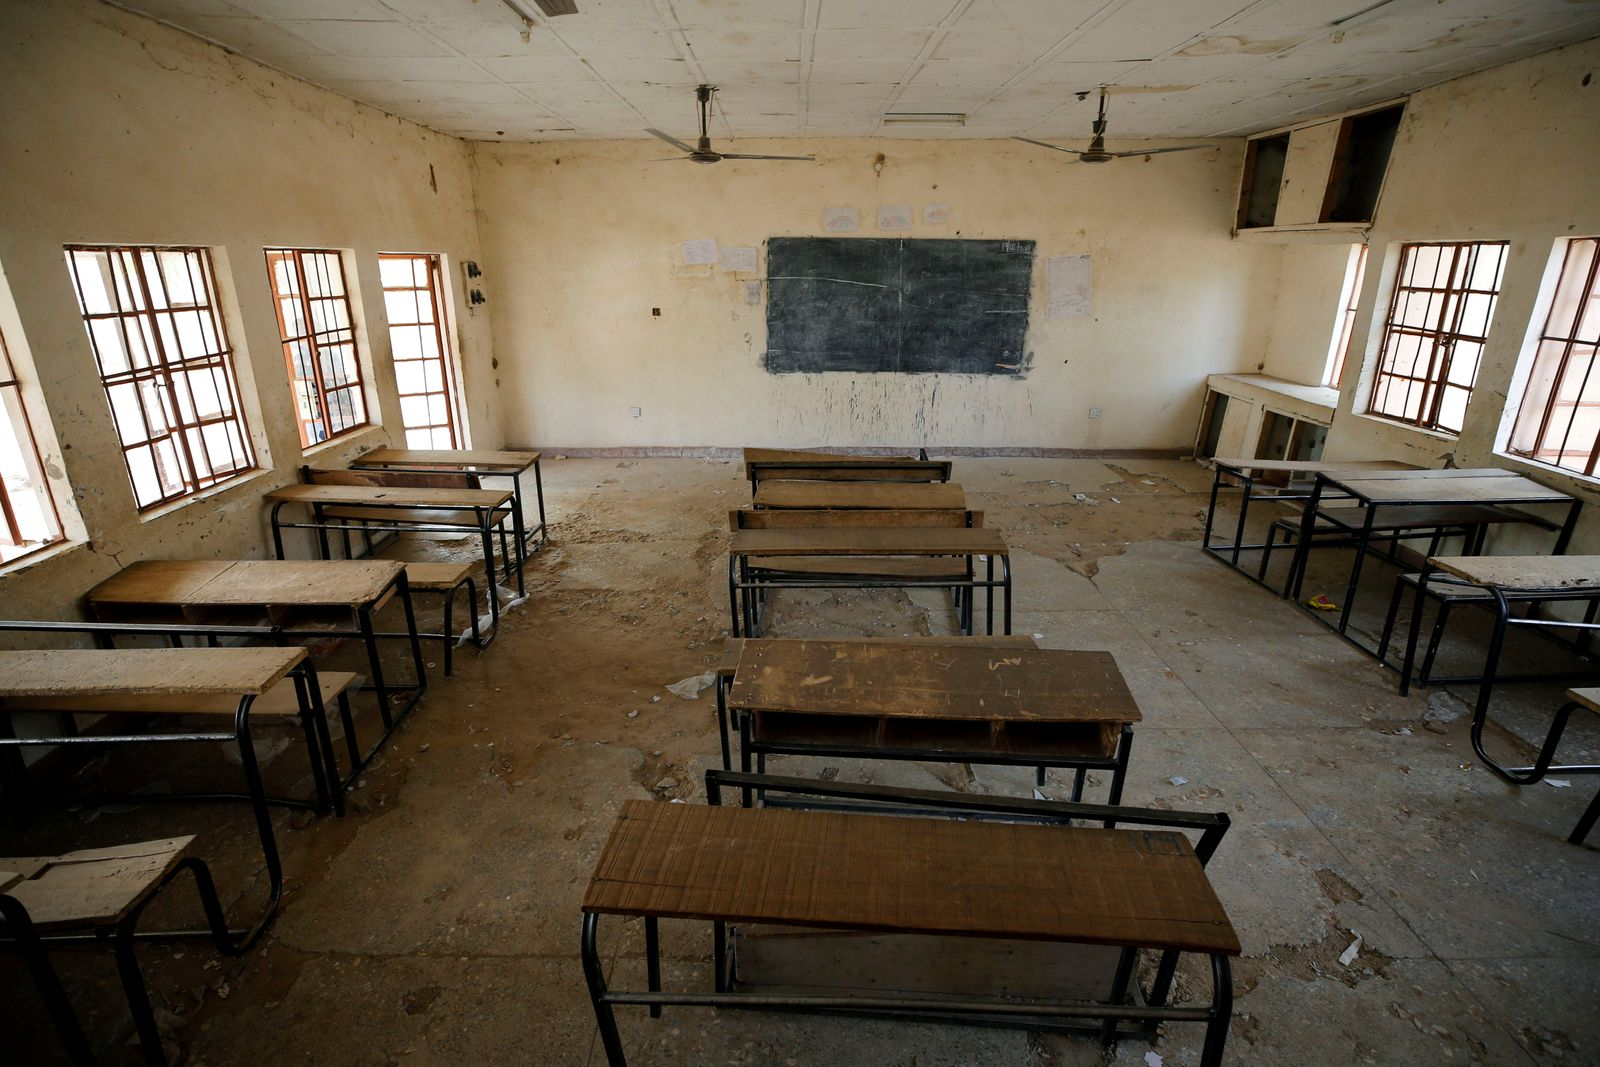 FILE PHOTO: A view shows an empty classroom at the school in Dapchi in the northeastern state of Yobe, where dozens of school girls went missing after an attack on the village by Boko Haram